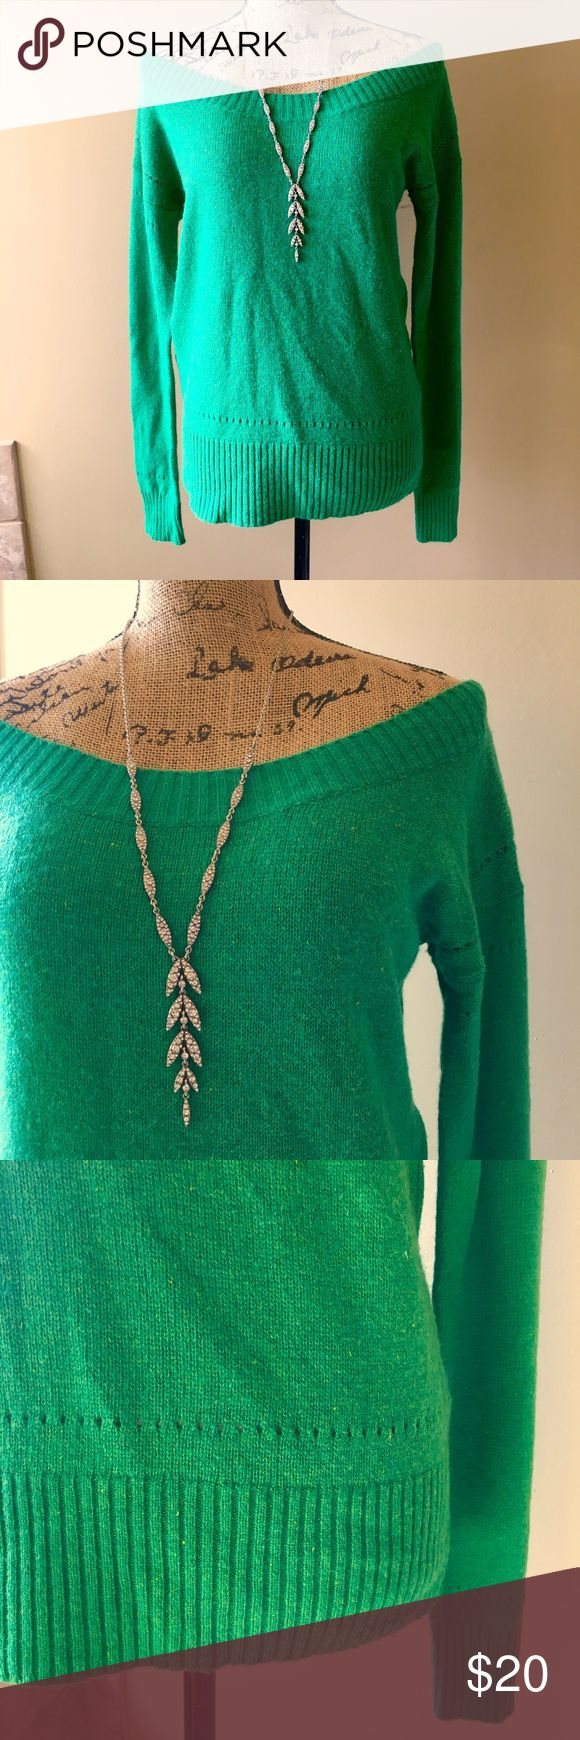 🍀 American eagle off shoulder wool/cotton sweater Kelly green part wool/cotton sweater can be worn off shoulders or off one shoulder. Very good condition, minimal piling. Super soft. Add this to a bundle to save 15%. For jewelry, visit my profile for a link to shop. American Eagle Outfitters Sweaters